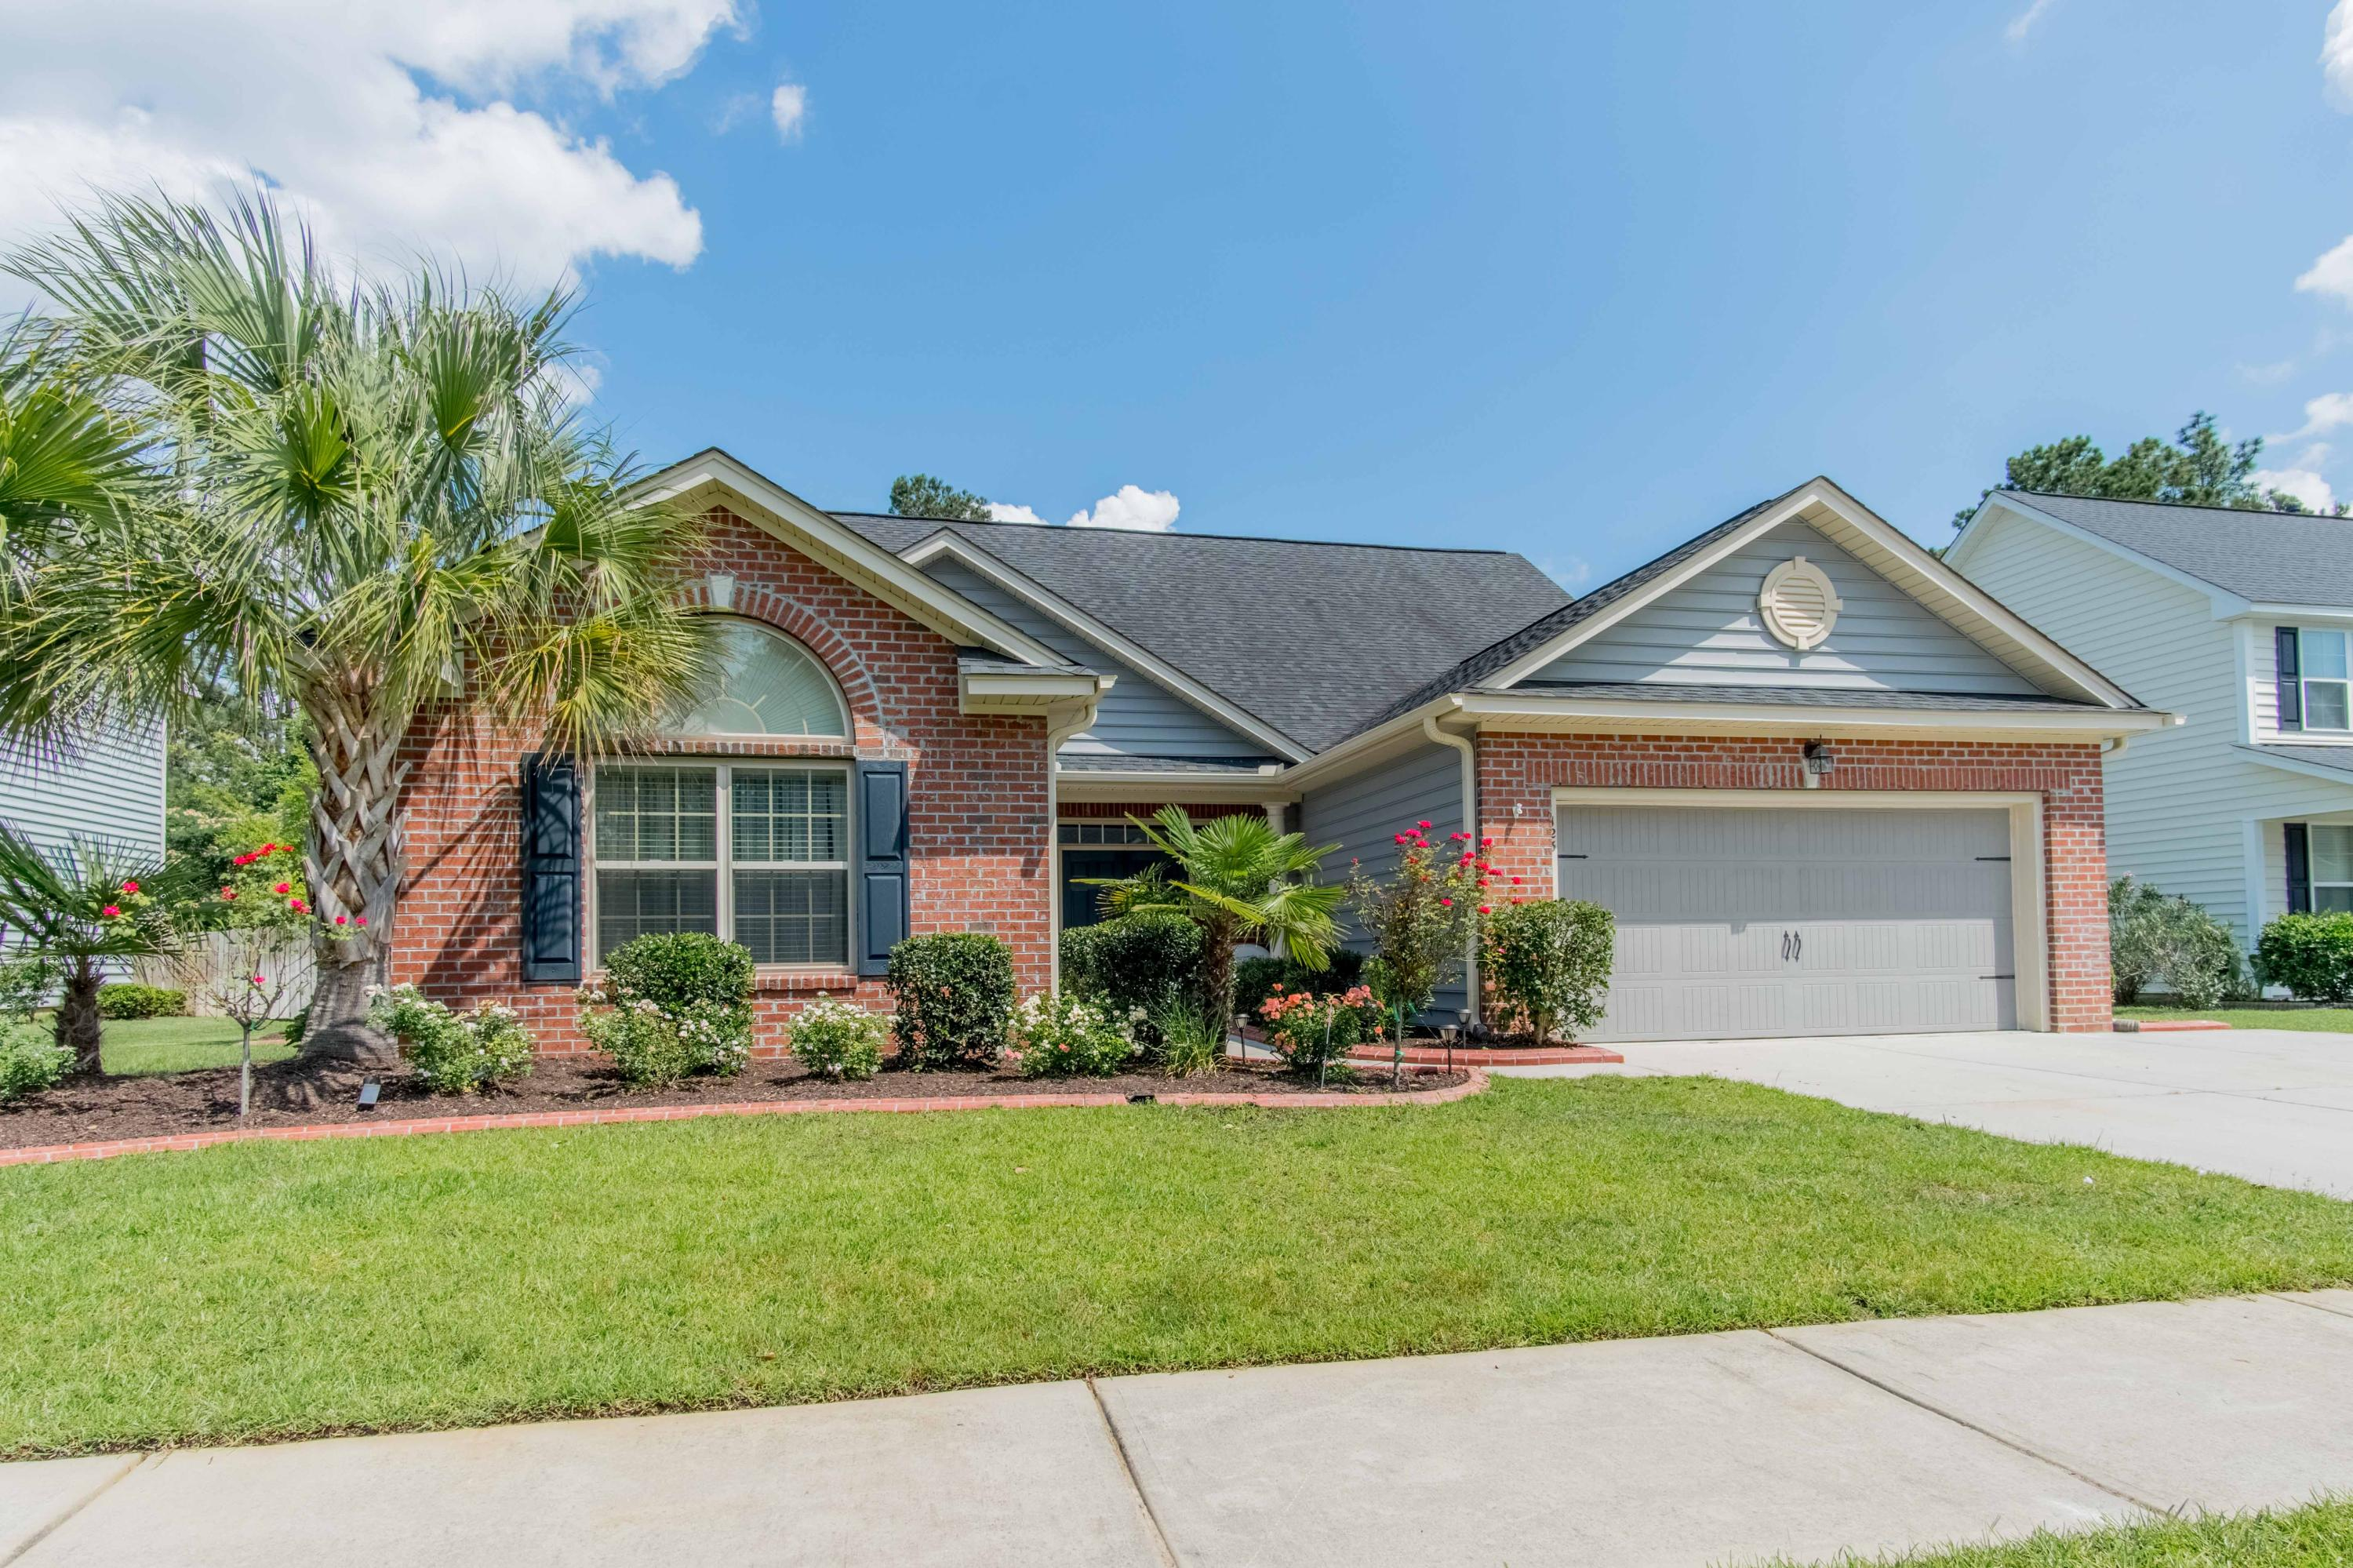 123 HAZELTINE BEND, SUMMERVILLE, SC 29483